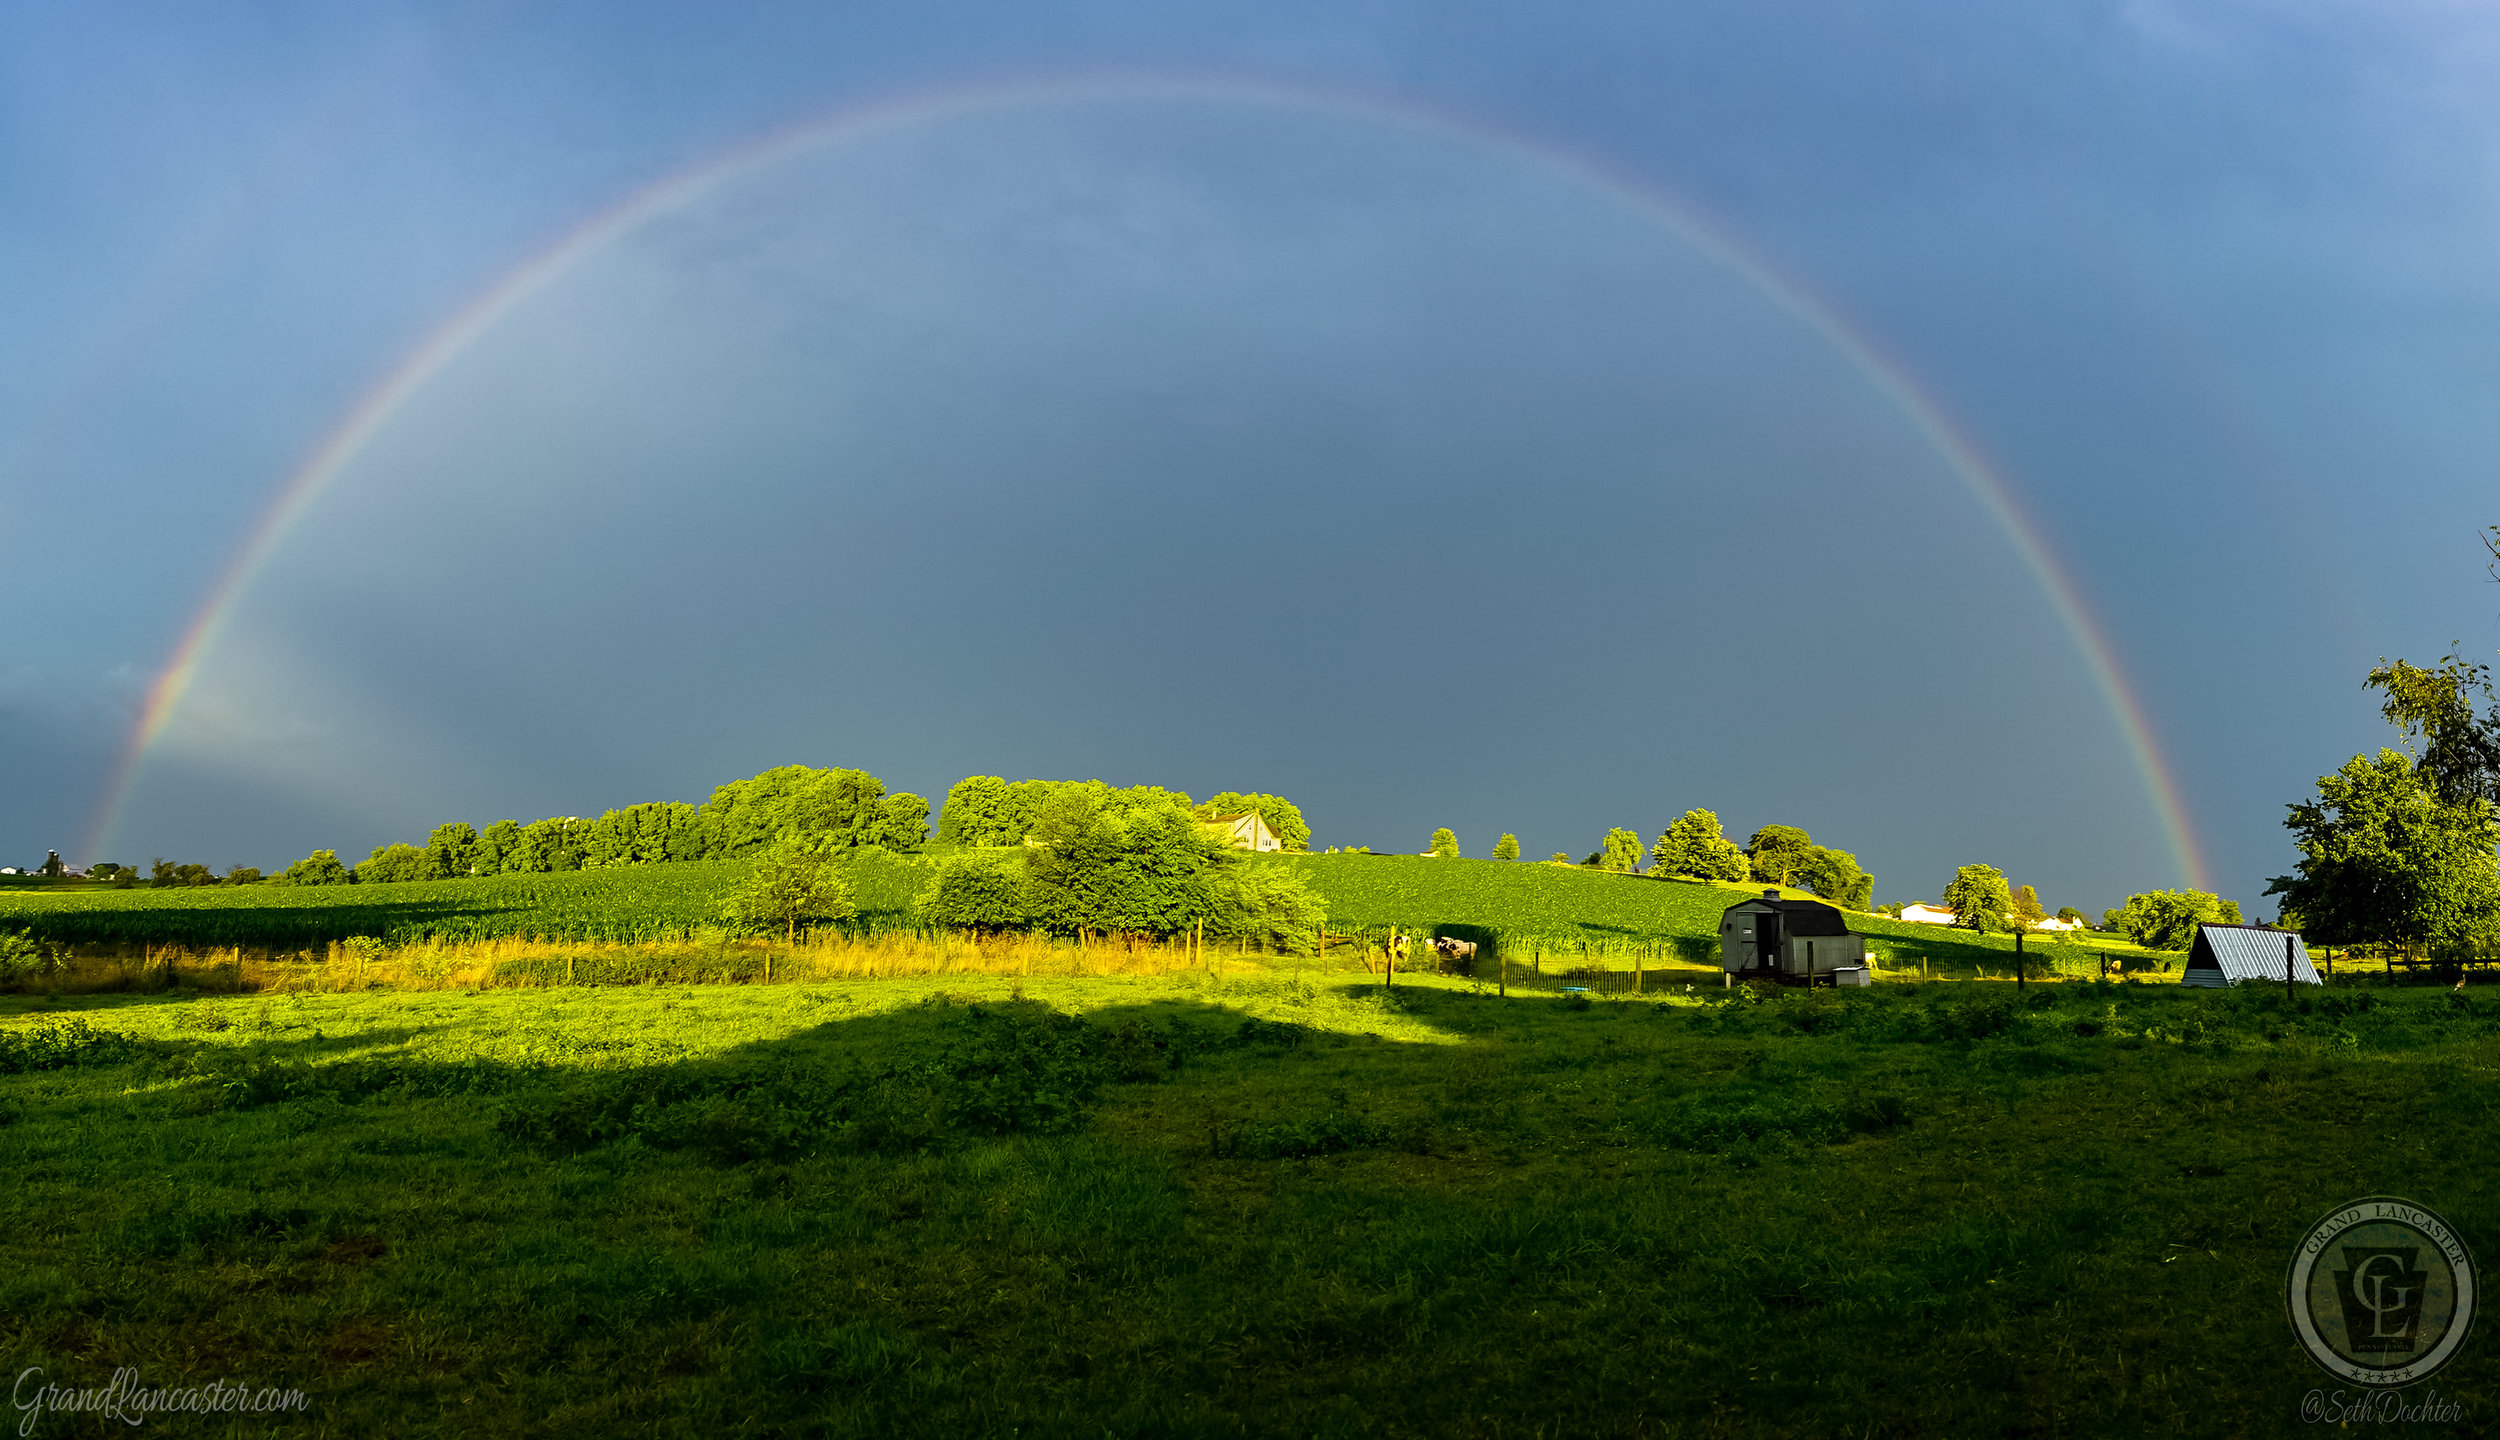 Within a few minutes, the clouds broke apart and the sky was filled with a massive arching rainbow. Honestly, when I look at this picture I like to pretend that farm to the left is shooting the rainbow across the sky. The second arch is very faint, but it was there as well.